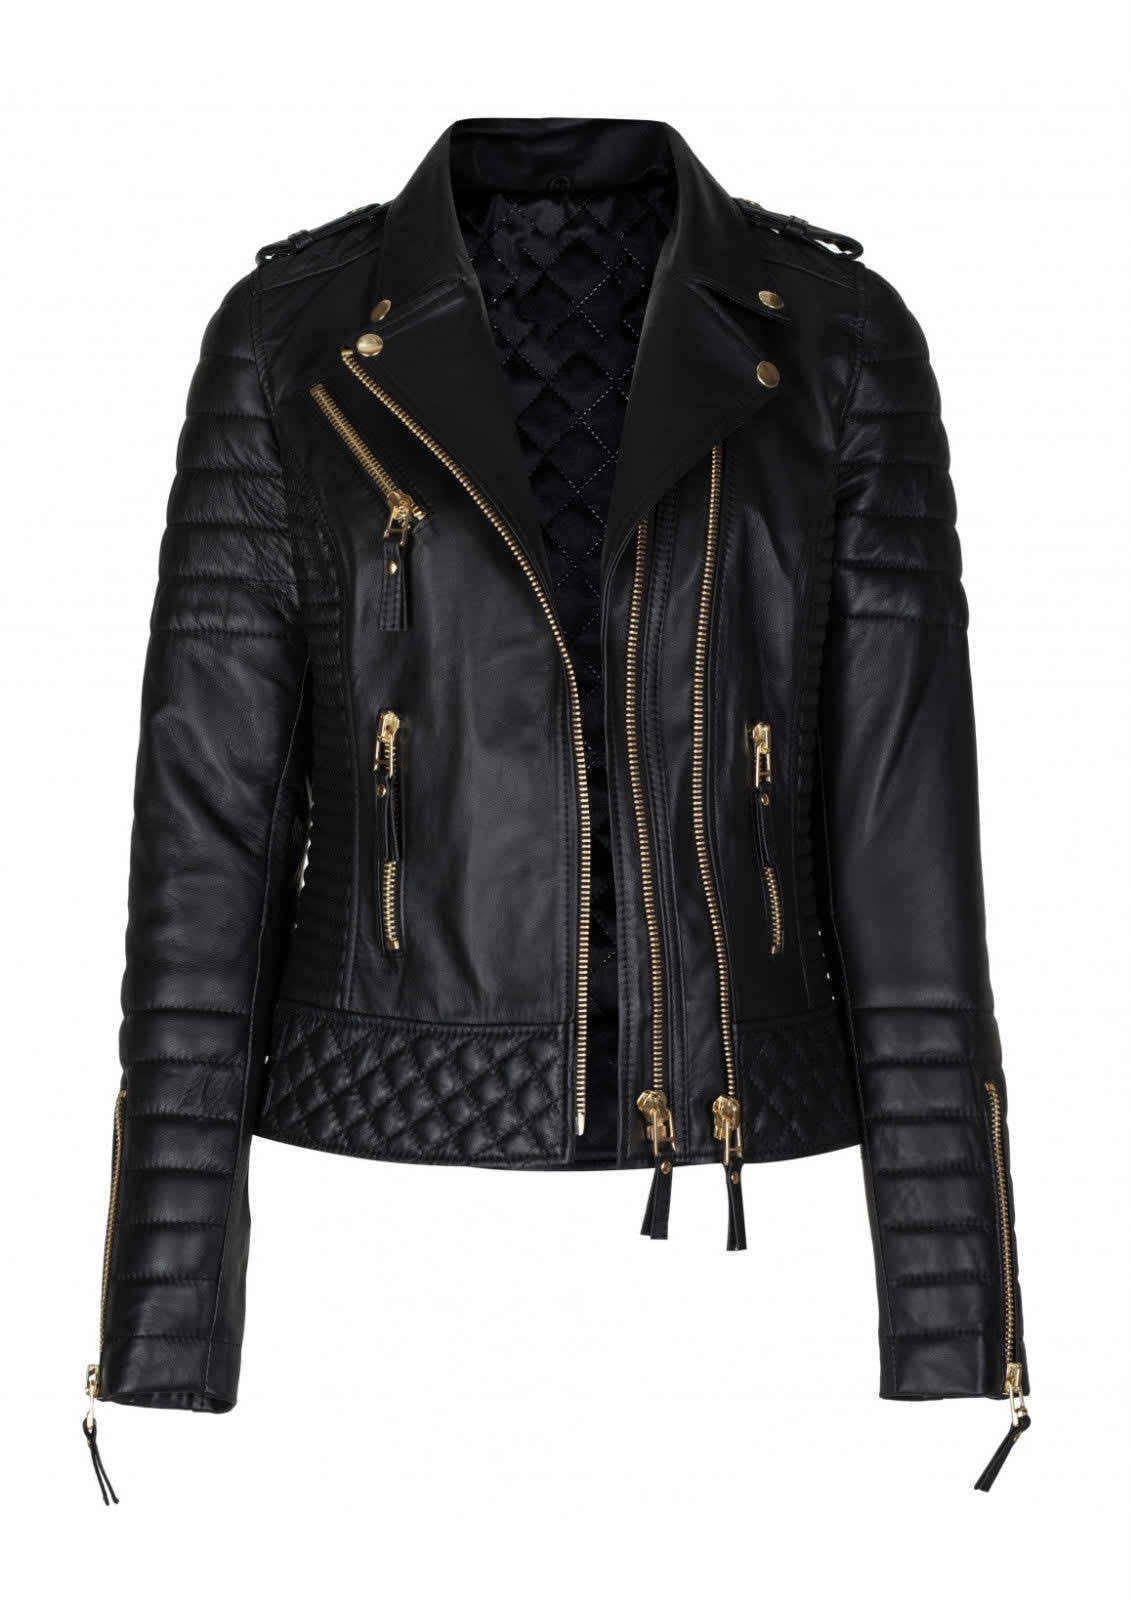 WOMENS KAY MICHAEL SLIM FIT REAL LEATHER JACKET QUILTED BLACK BIKER JACKET